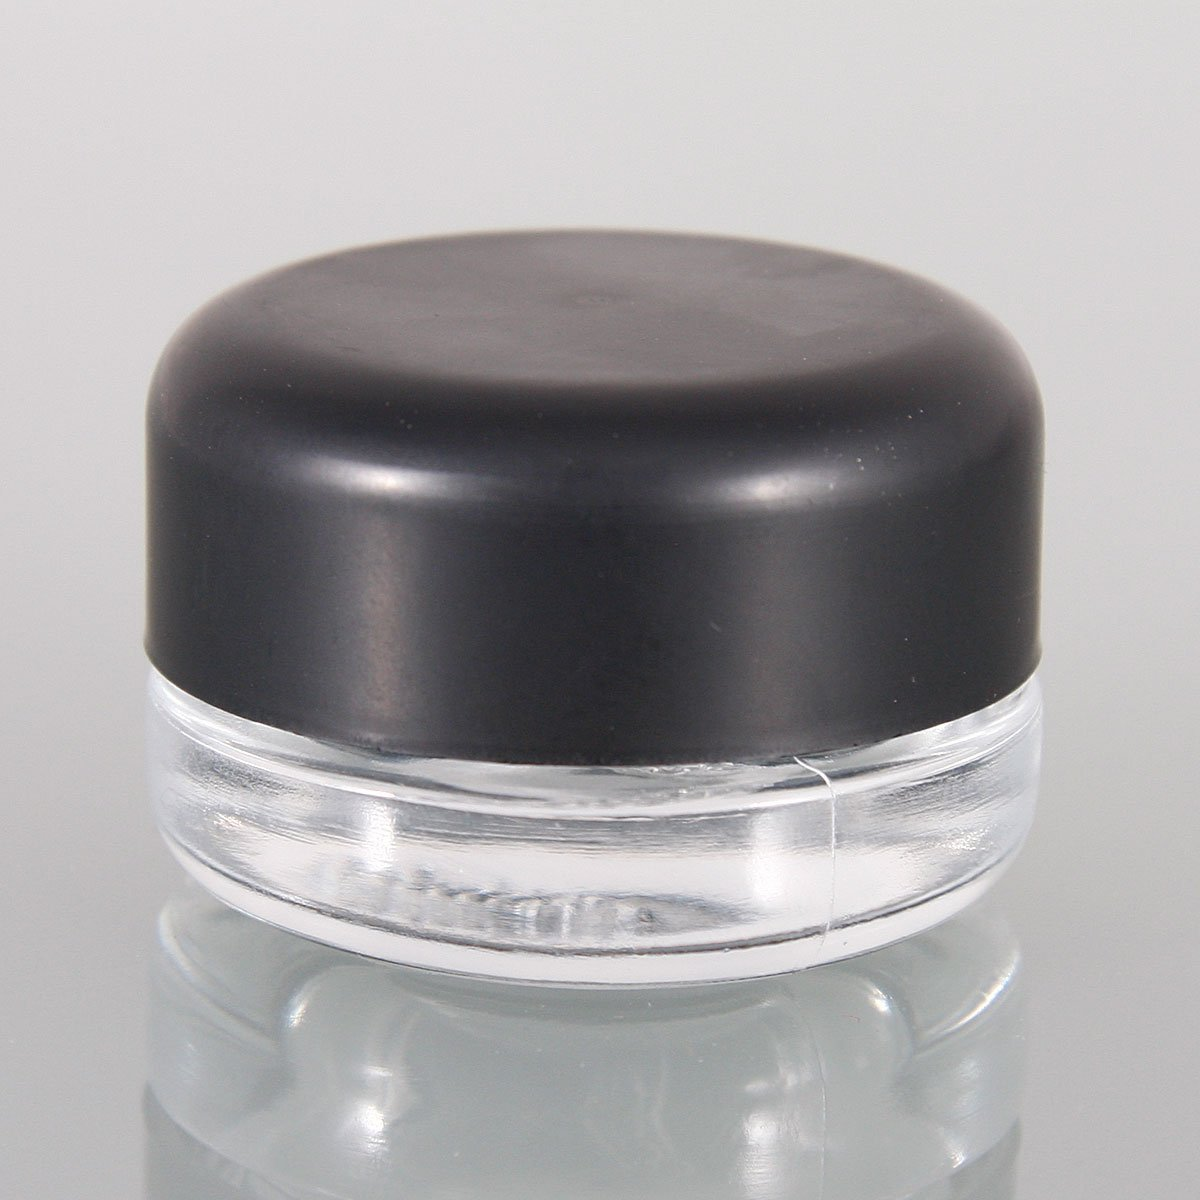 Child Resistant 5ml Glass Concentrate Jar (3-4 grams) Black